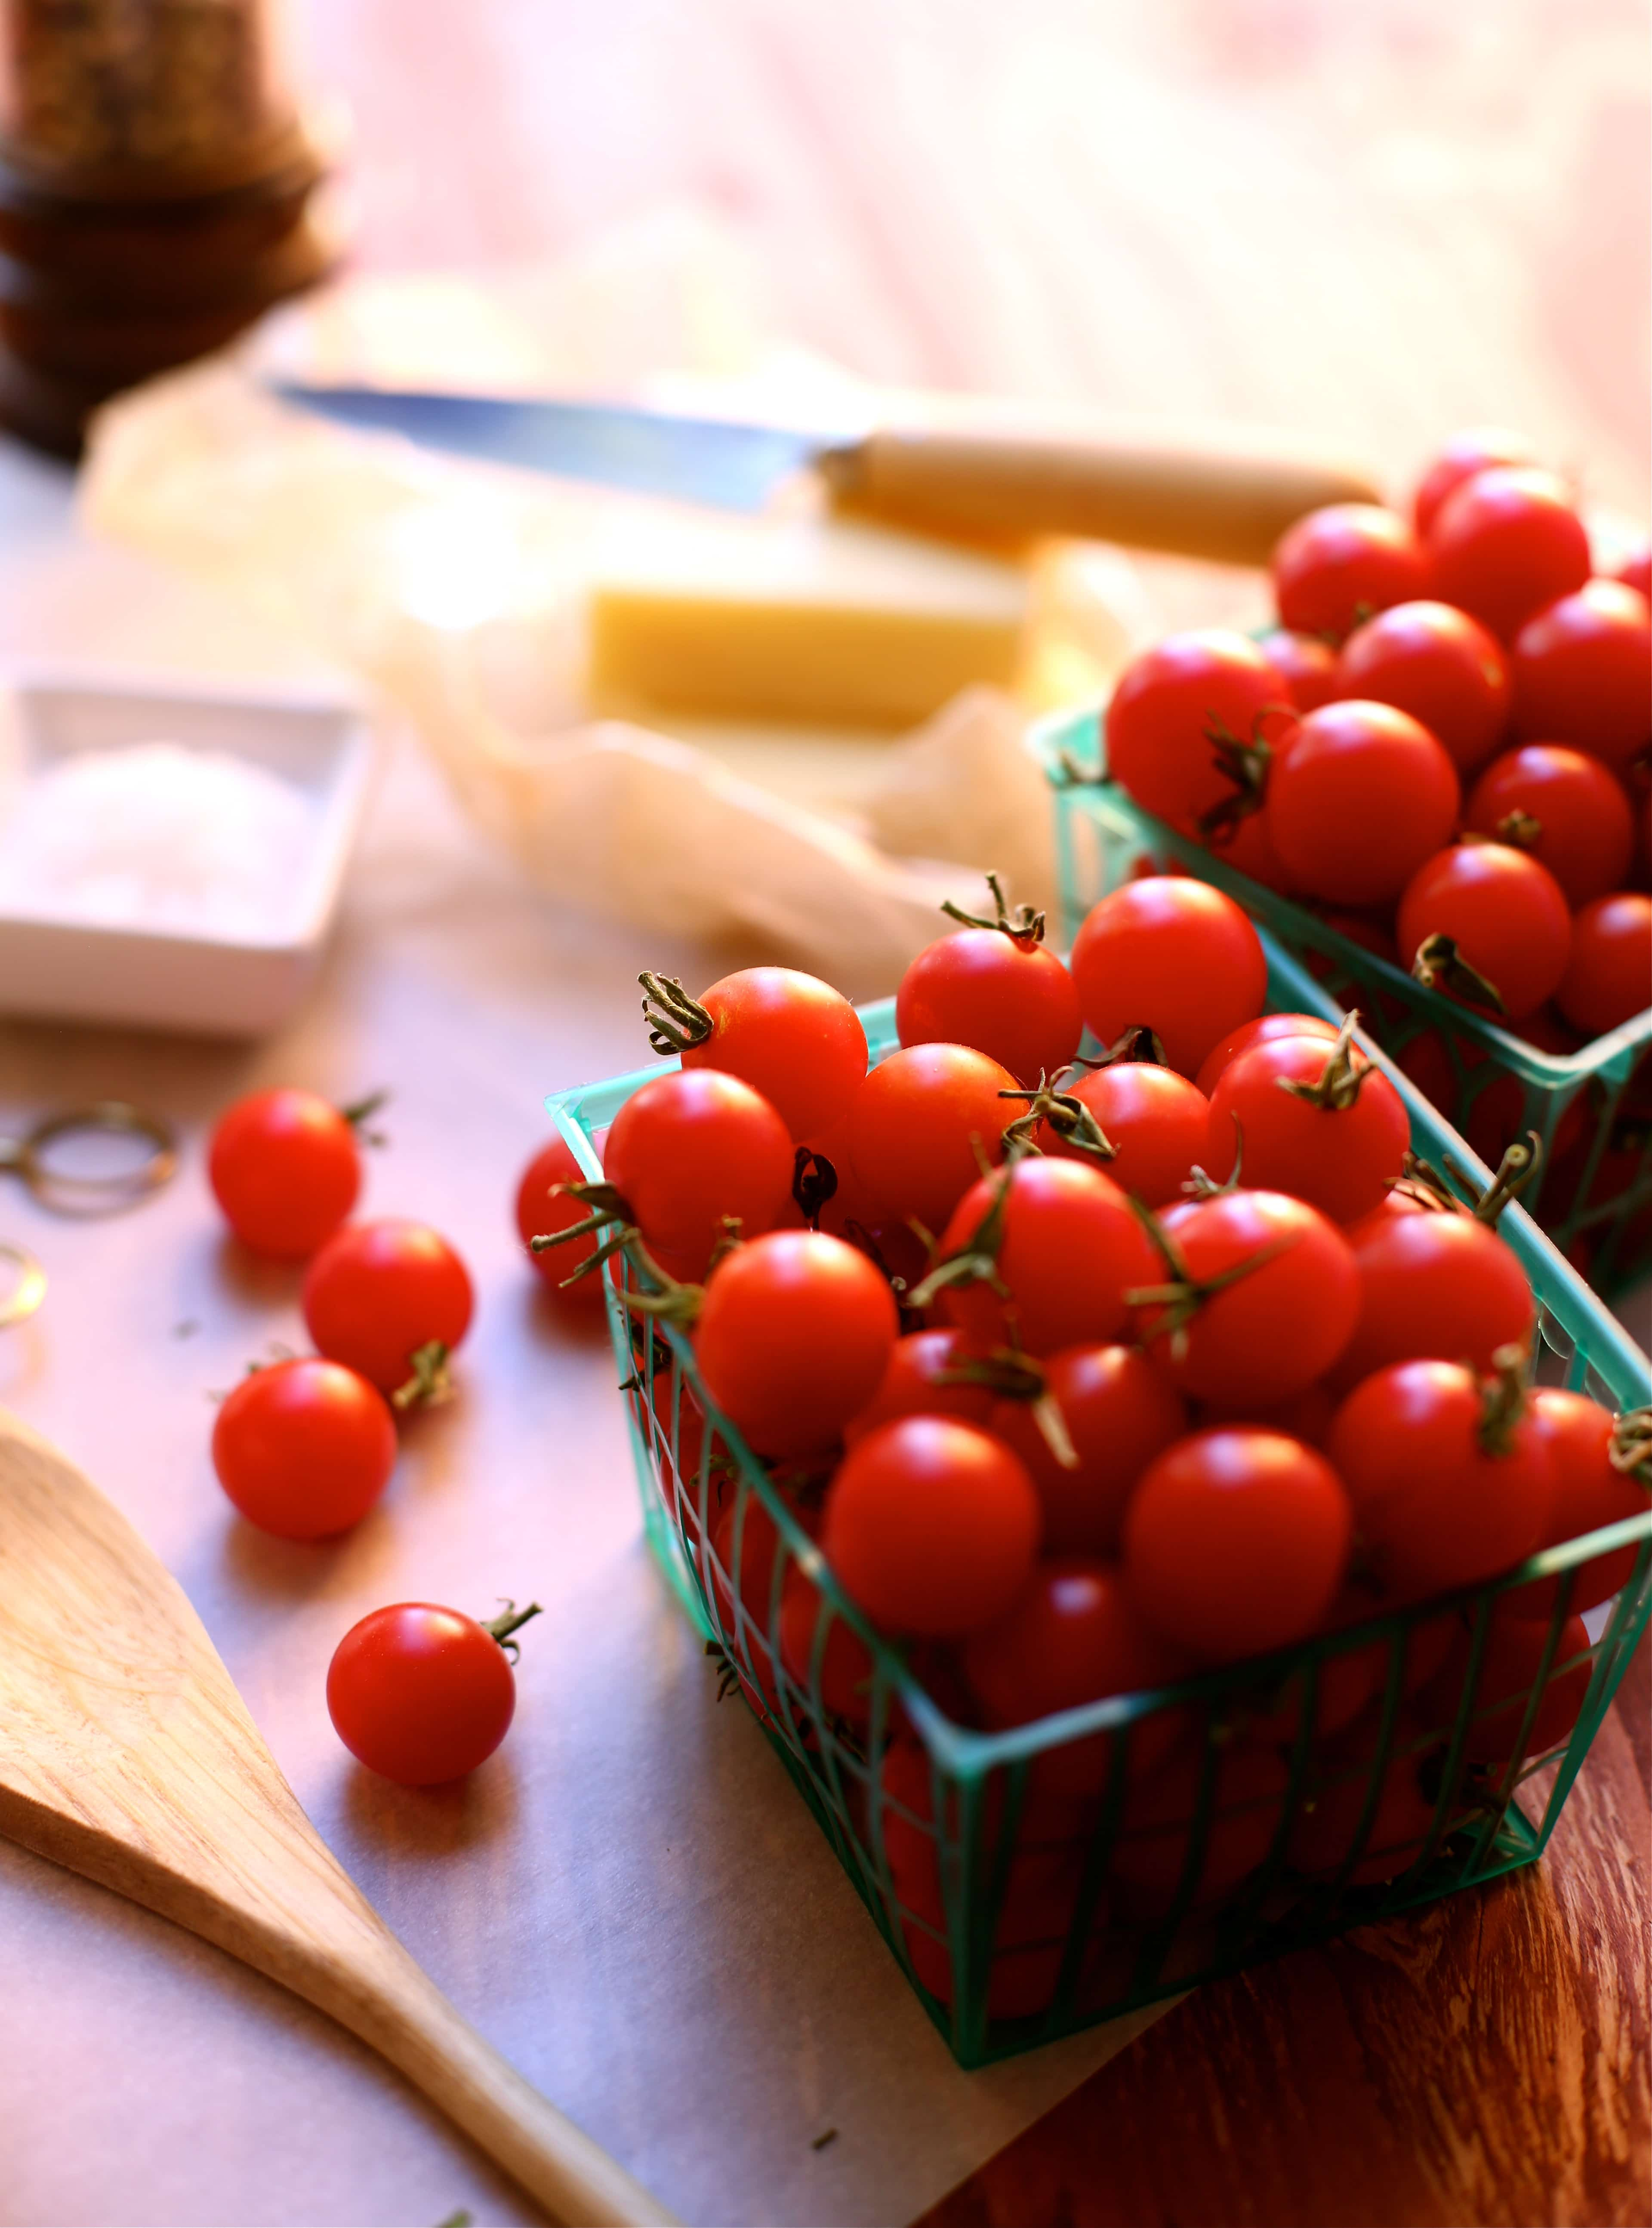 small greeen crates of red cherry tomatoes with a wooden spoon alongside, knife and cheese in the background.